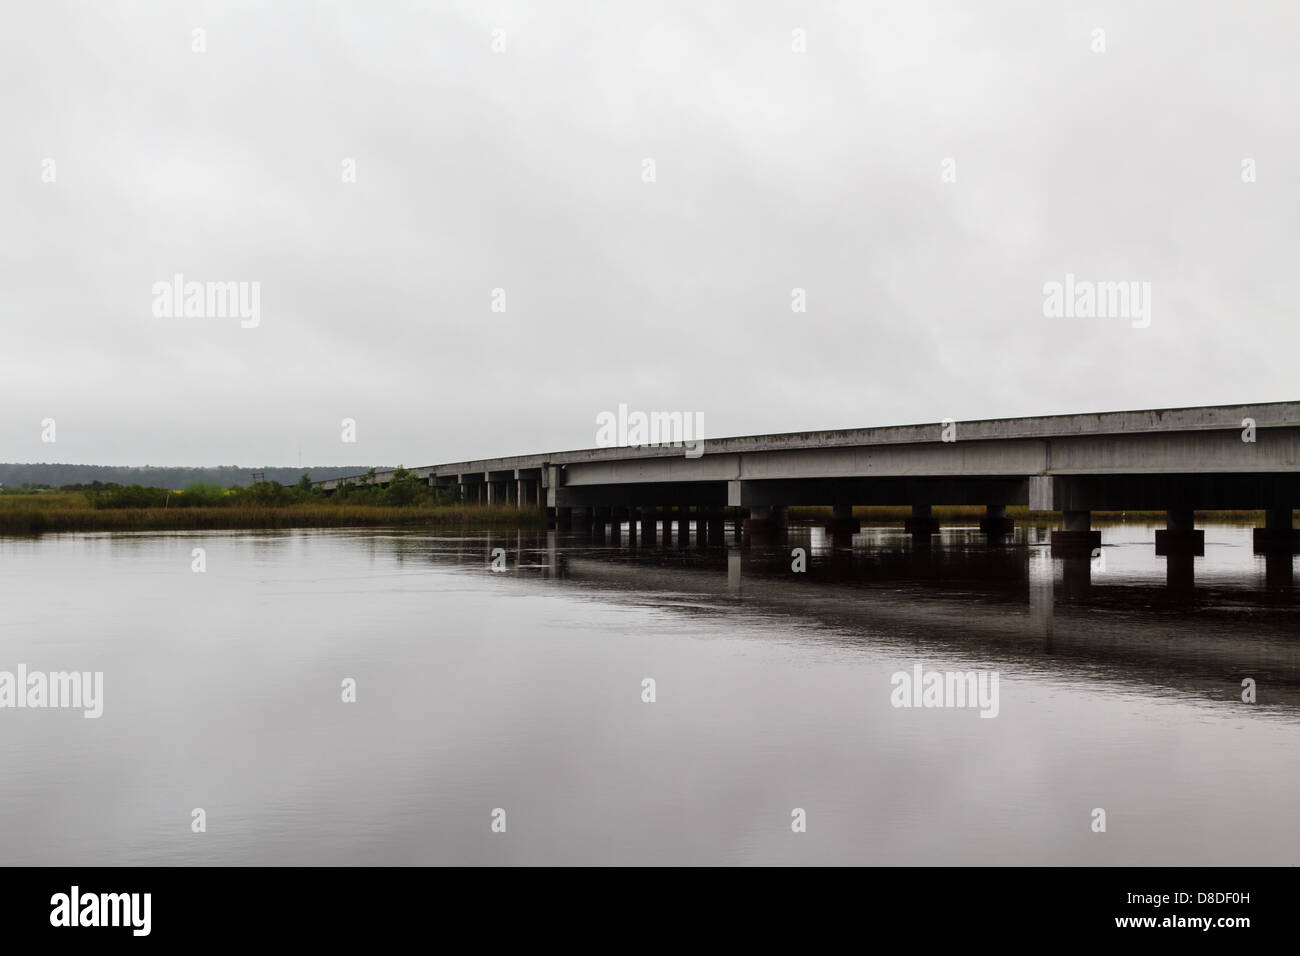 A bridge over a river in the US on a sullen fall day - Stock Image